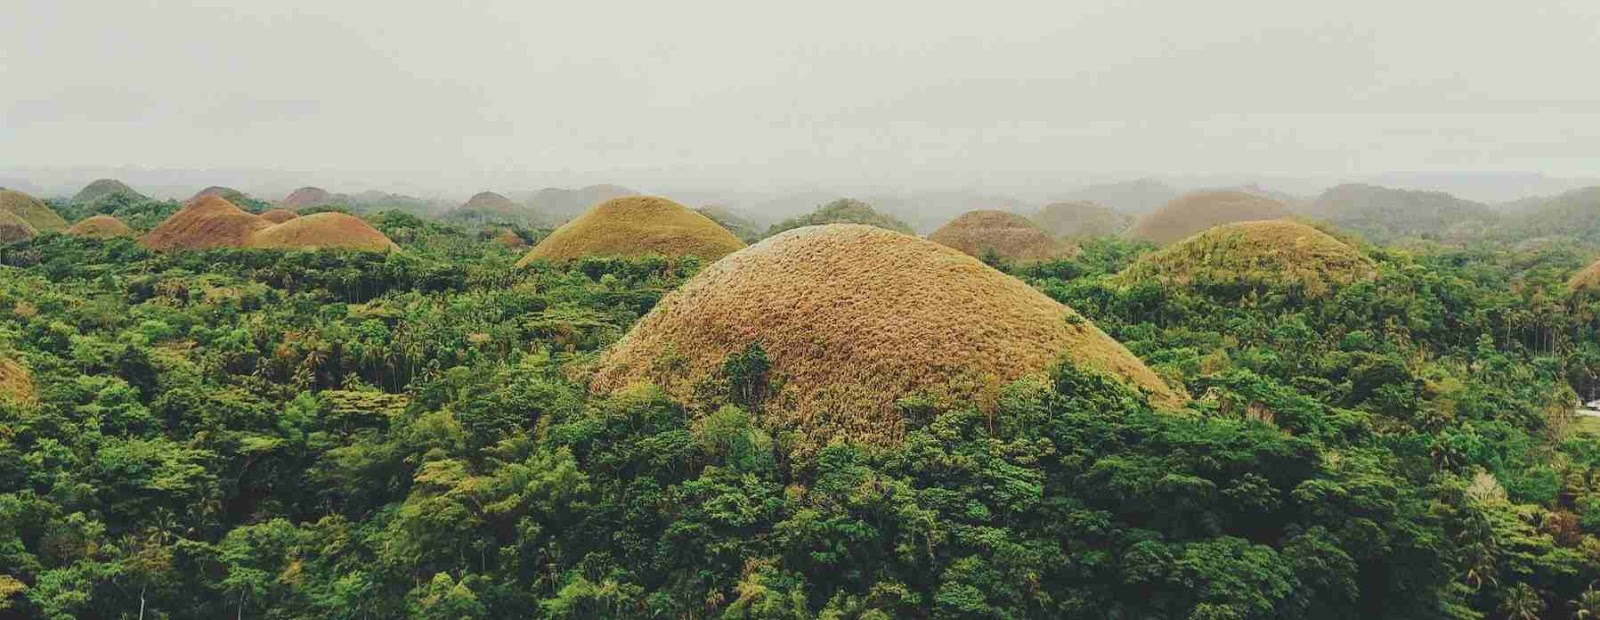 The iconic Chocolate Hills of Bohol